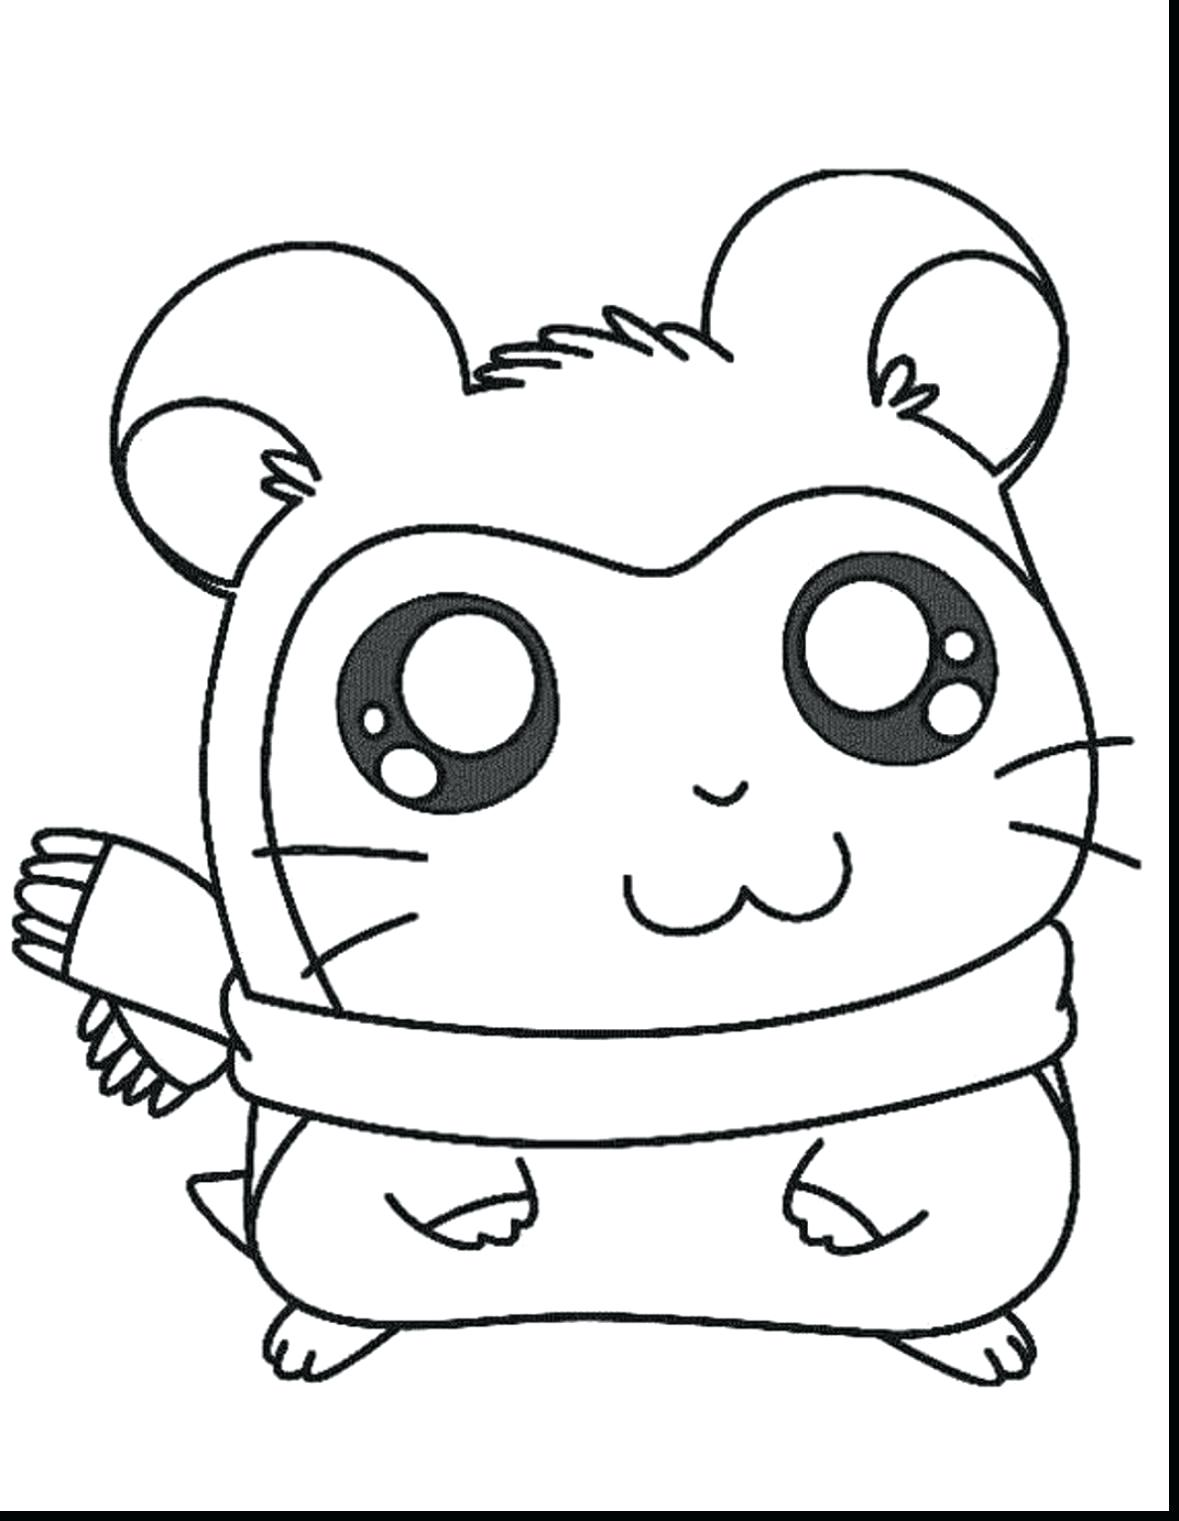 Cute Pig Drawing at GetDrawings.com   Free for personal use Cute Pig ...